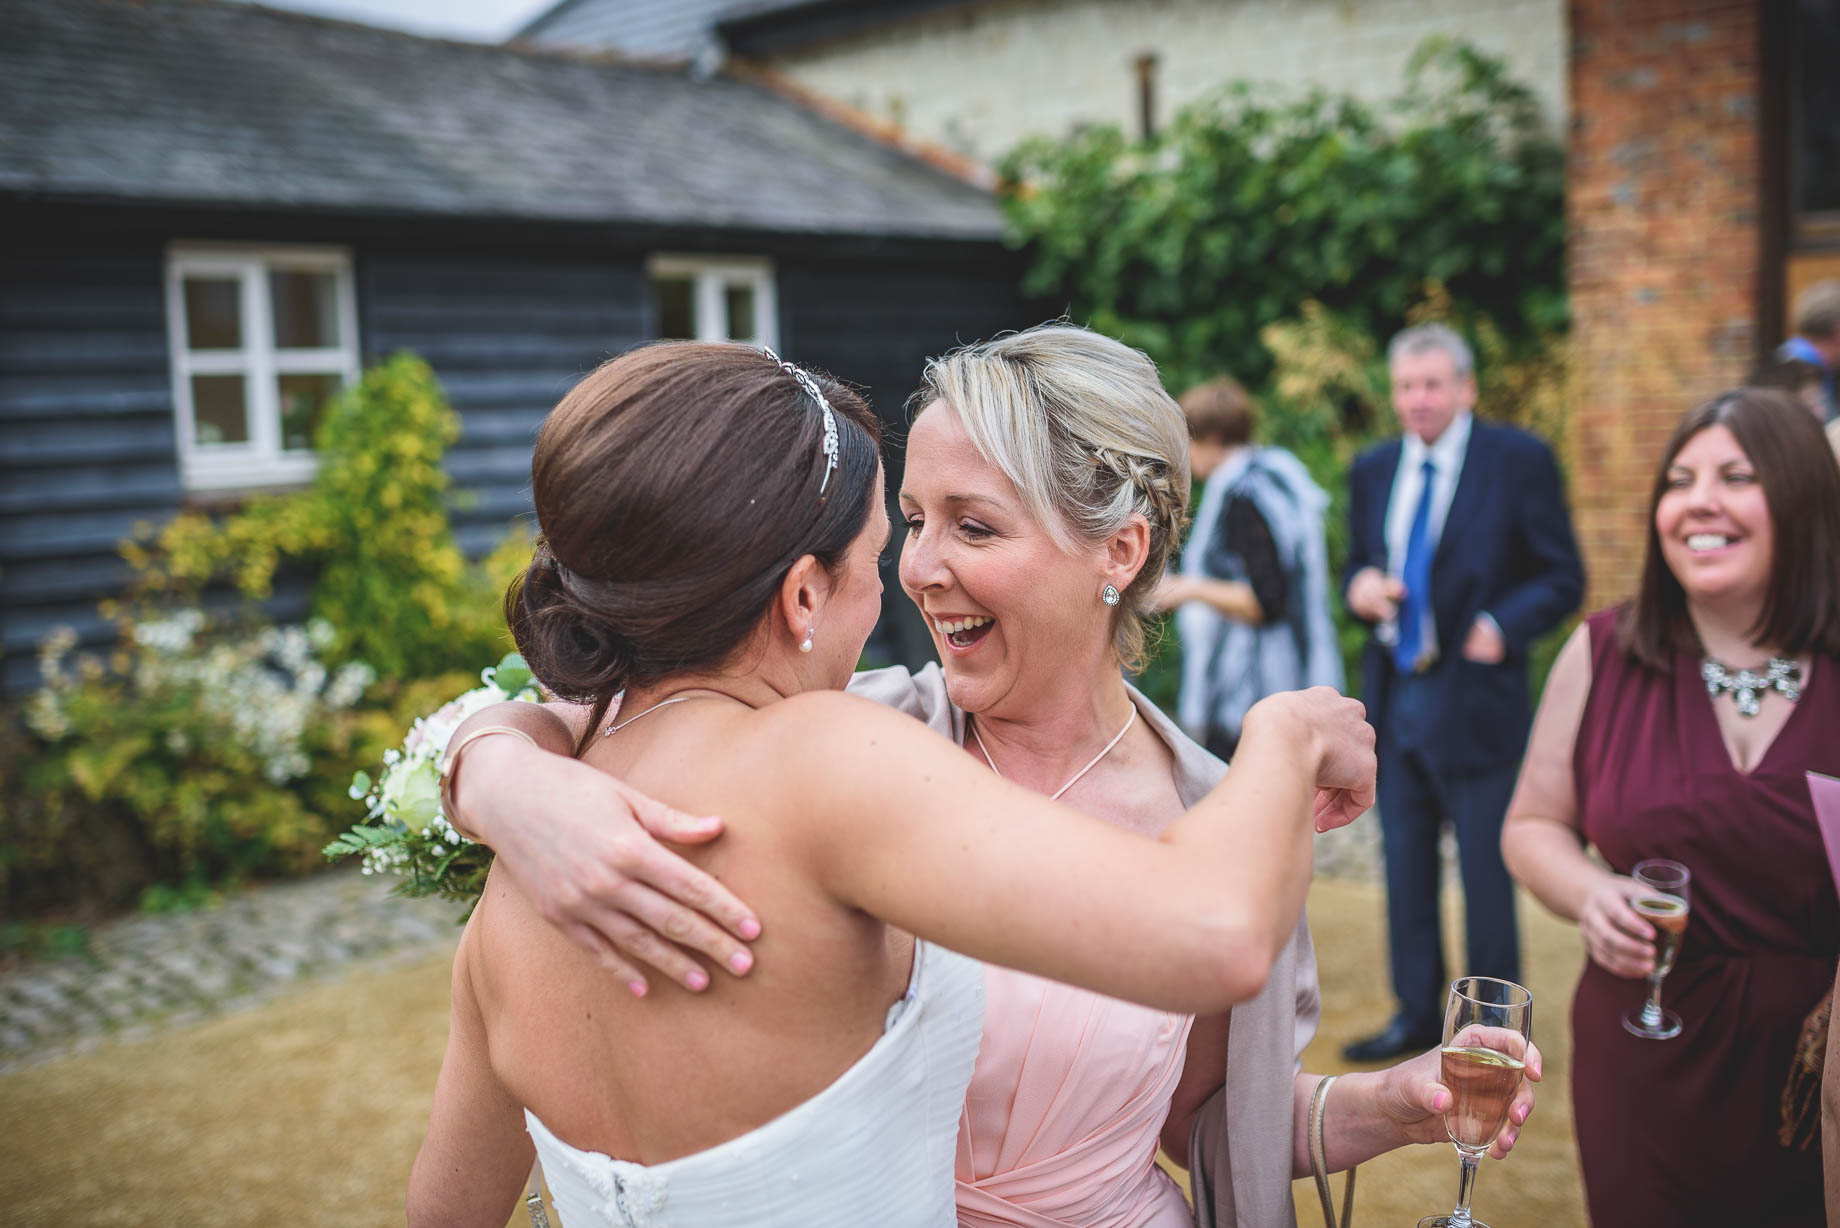 Bury Court Barn wedding photography - Guy Collier Photography - Karen and John (71 of 166)